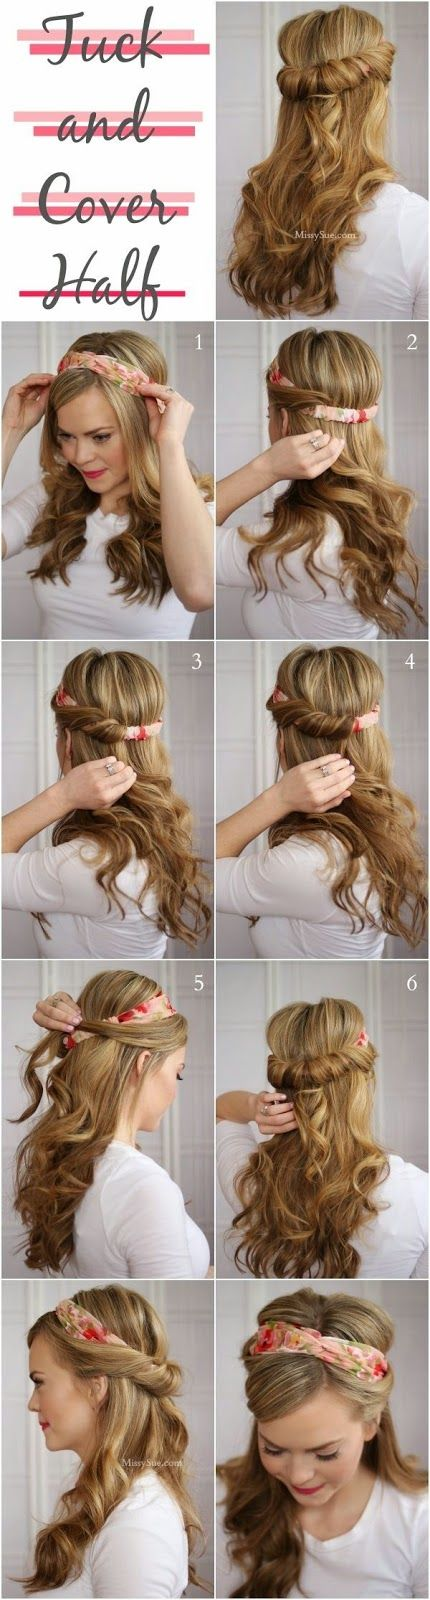 Super cute would totally do this for school and summer!!